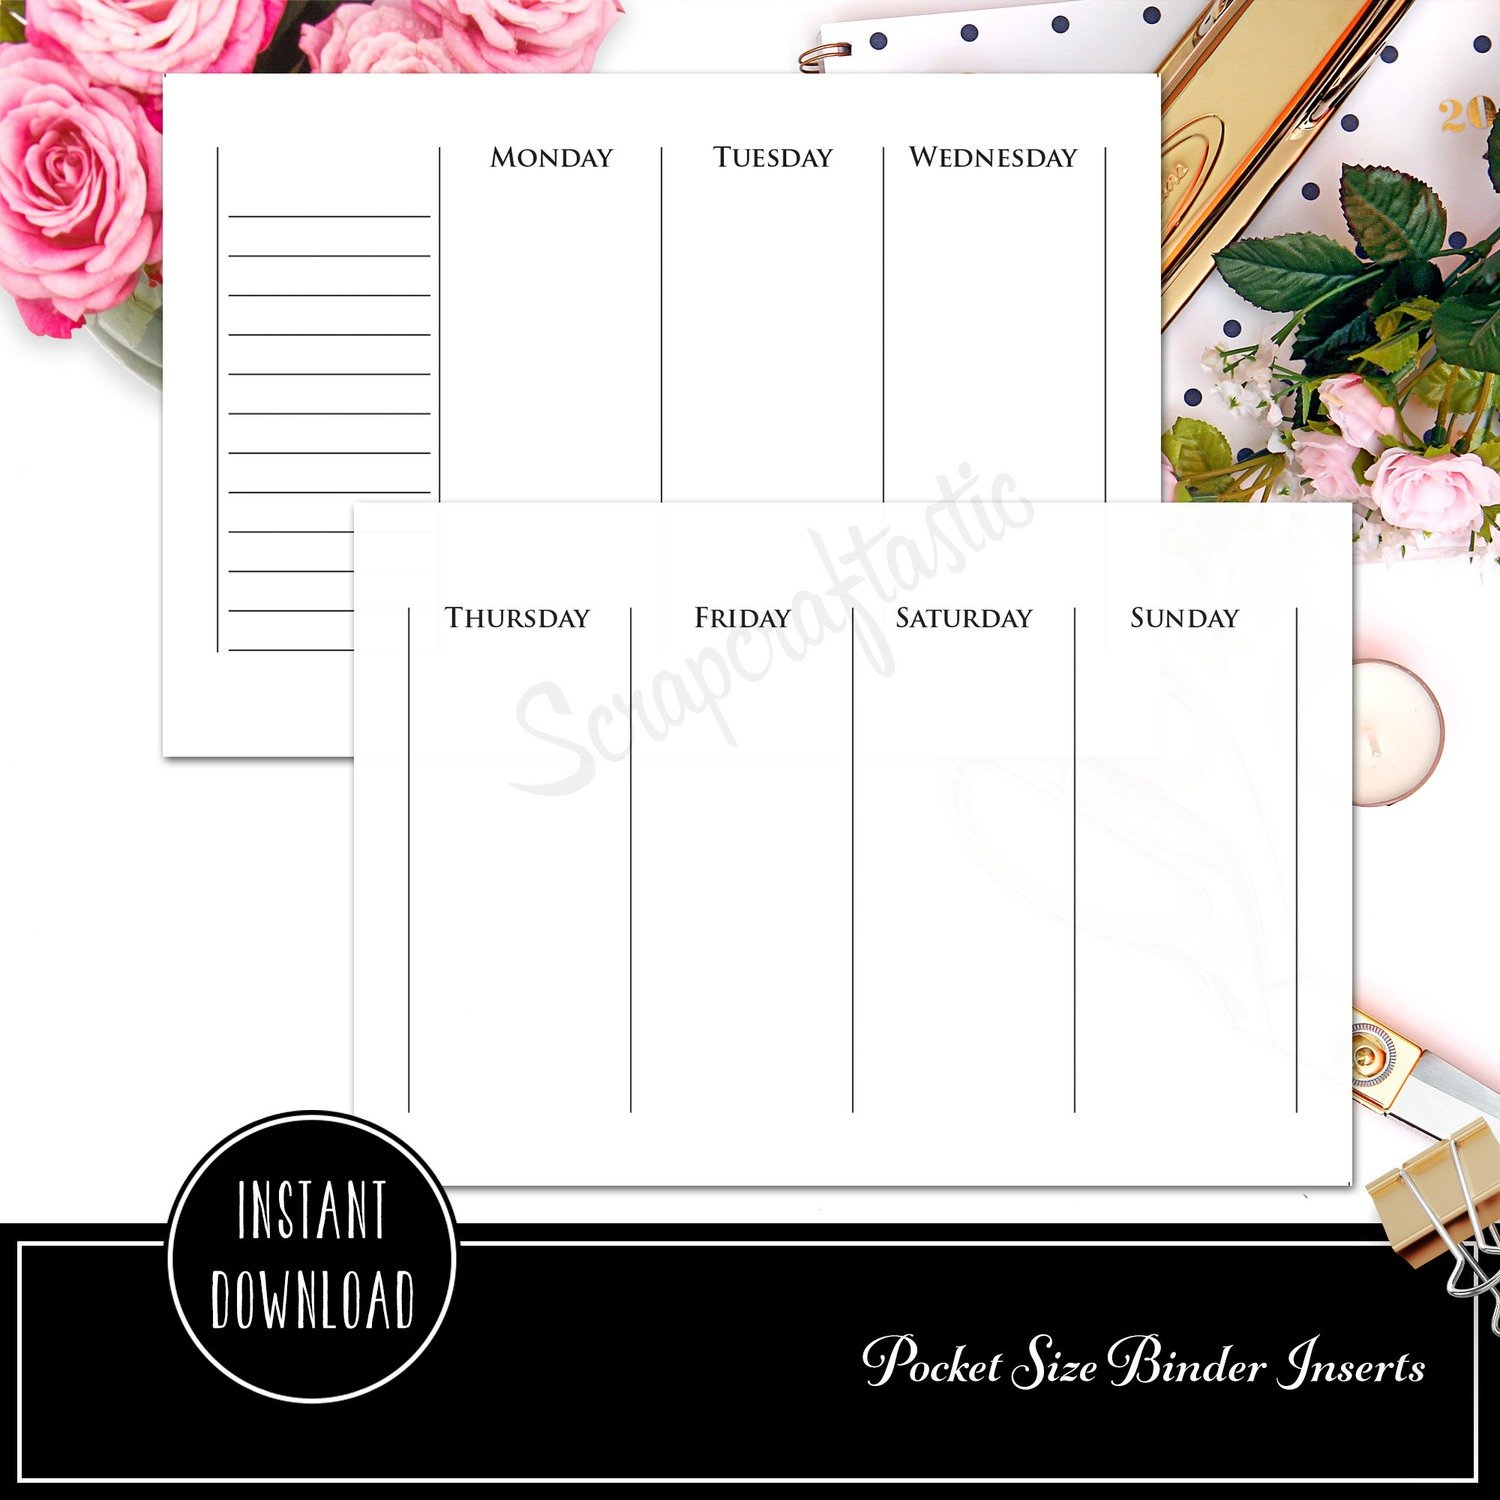 POCKET RINGS - Week on Two Pages Full Horizontal Ring Binder Printable Insert Refill Undated